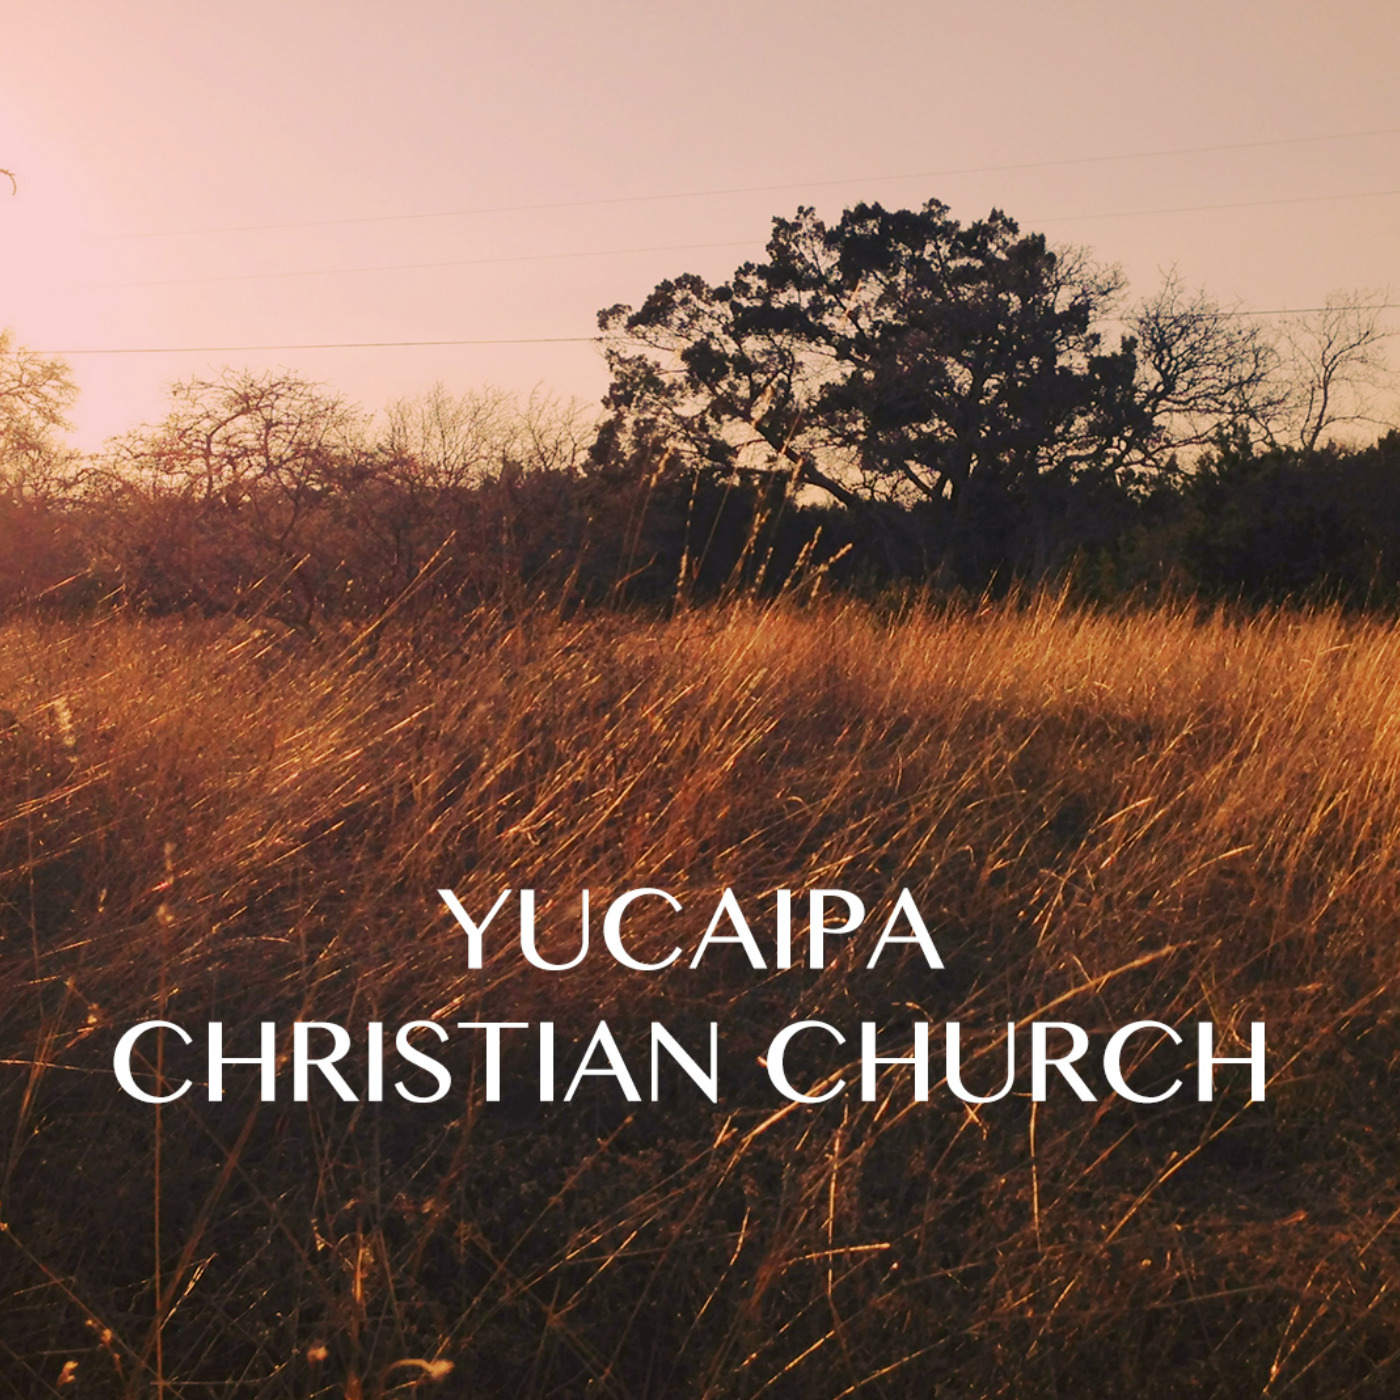 Yucaipa Christian Church